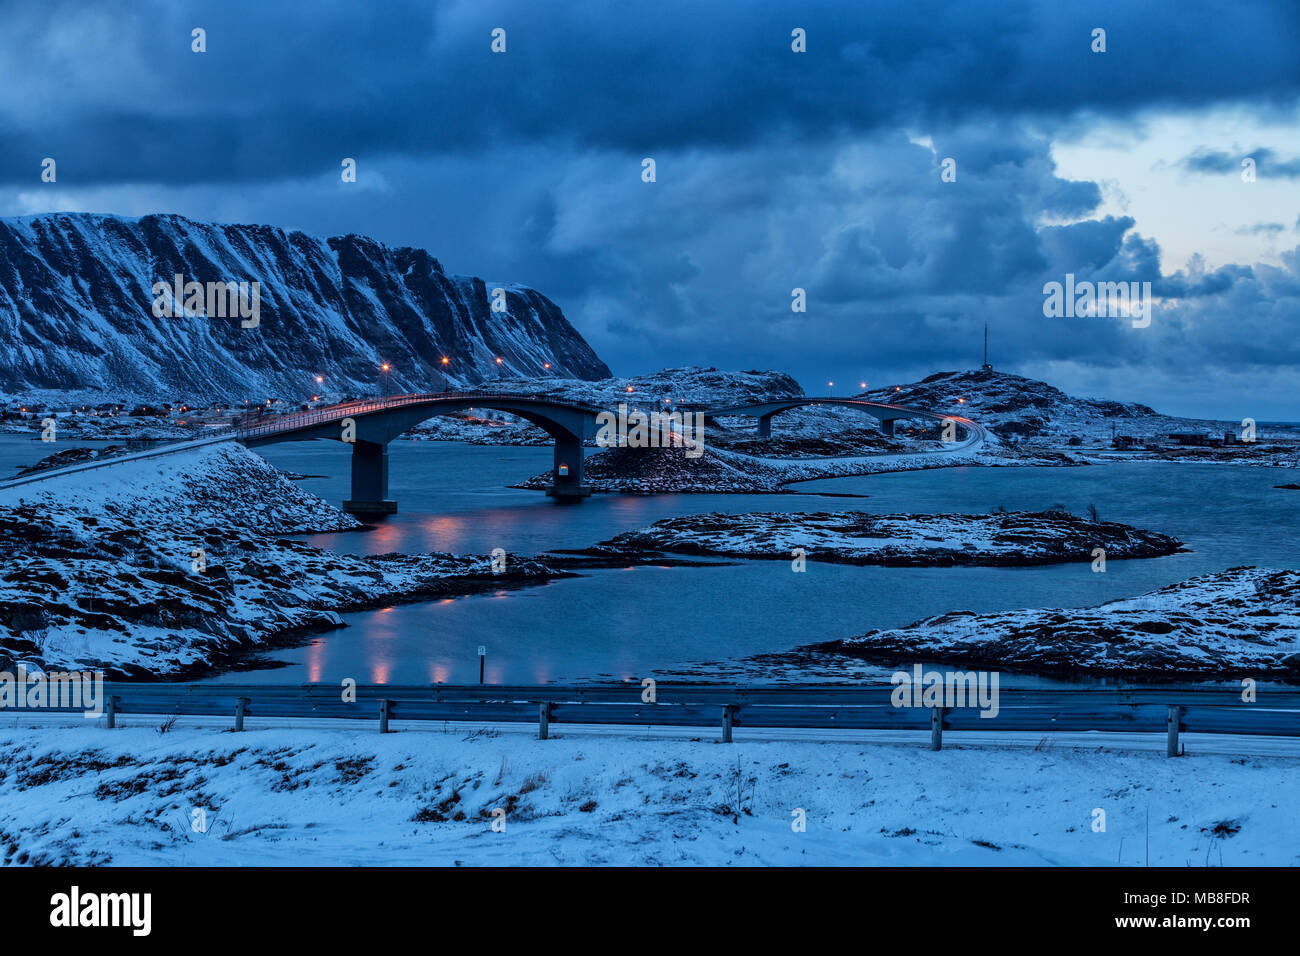 Lofoten Islands, Norway, 03-11-2018, seaside, fjord - Stock Image